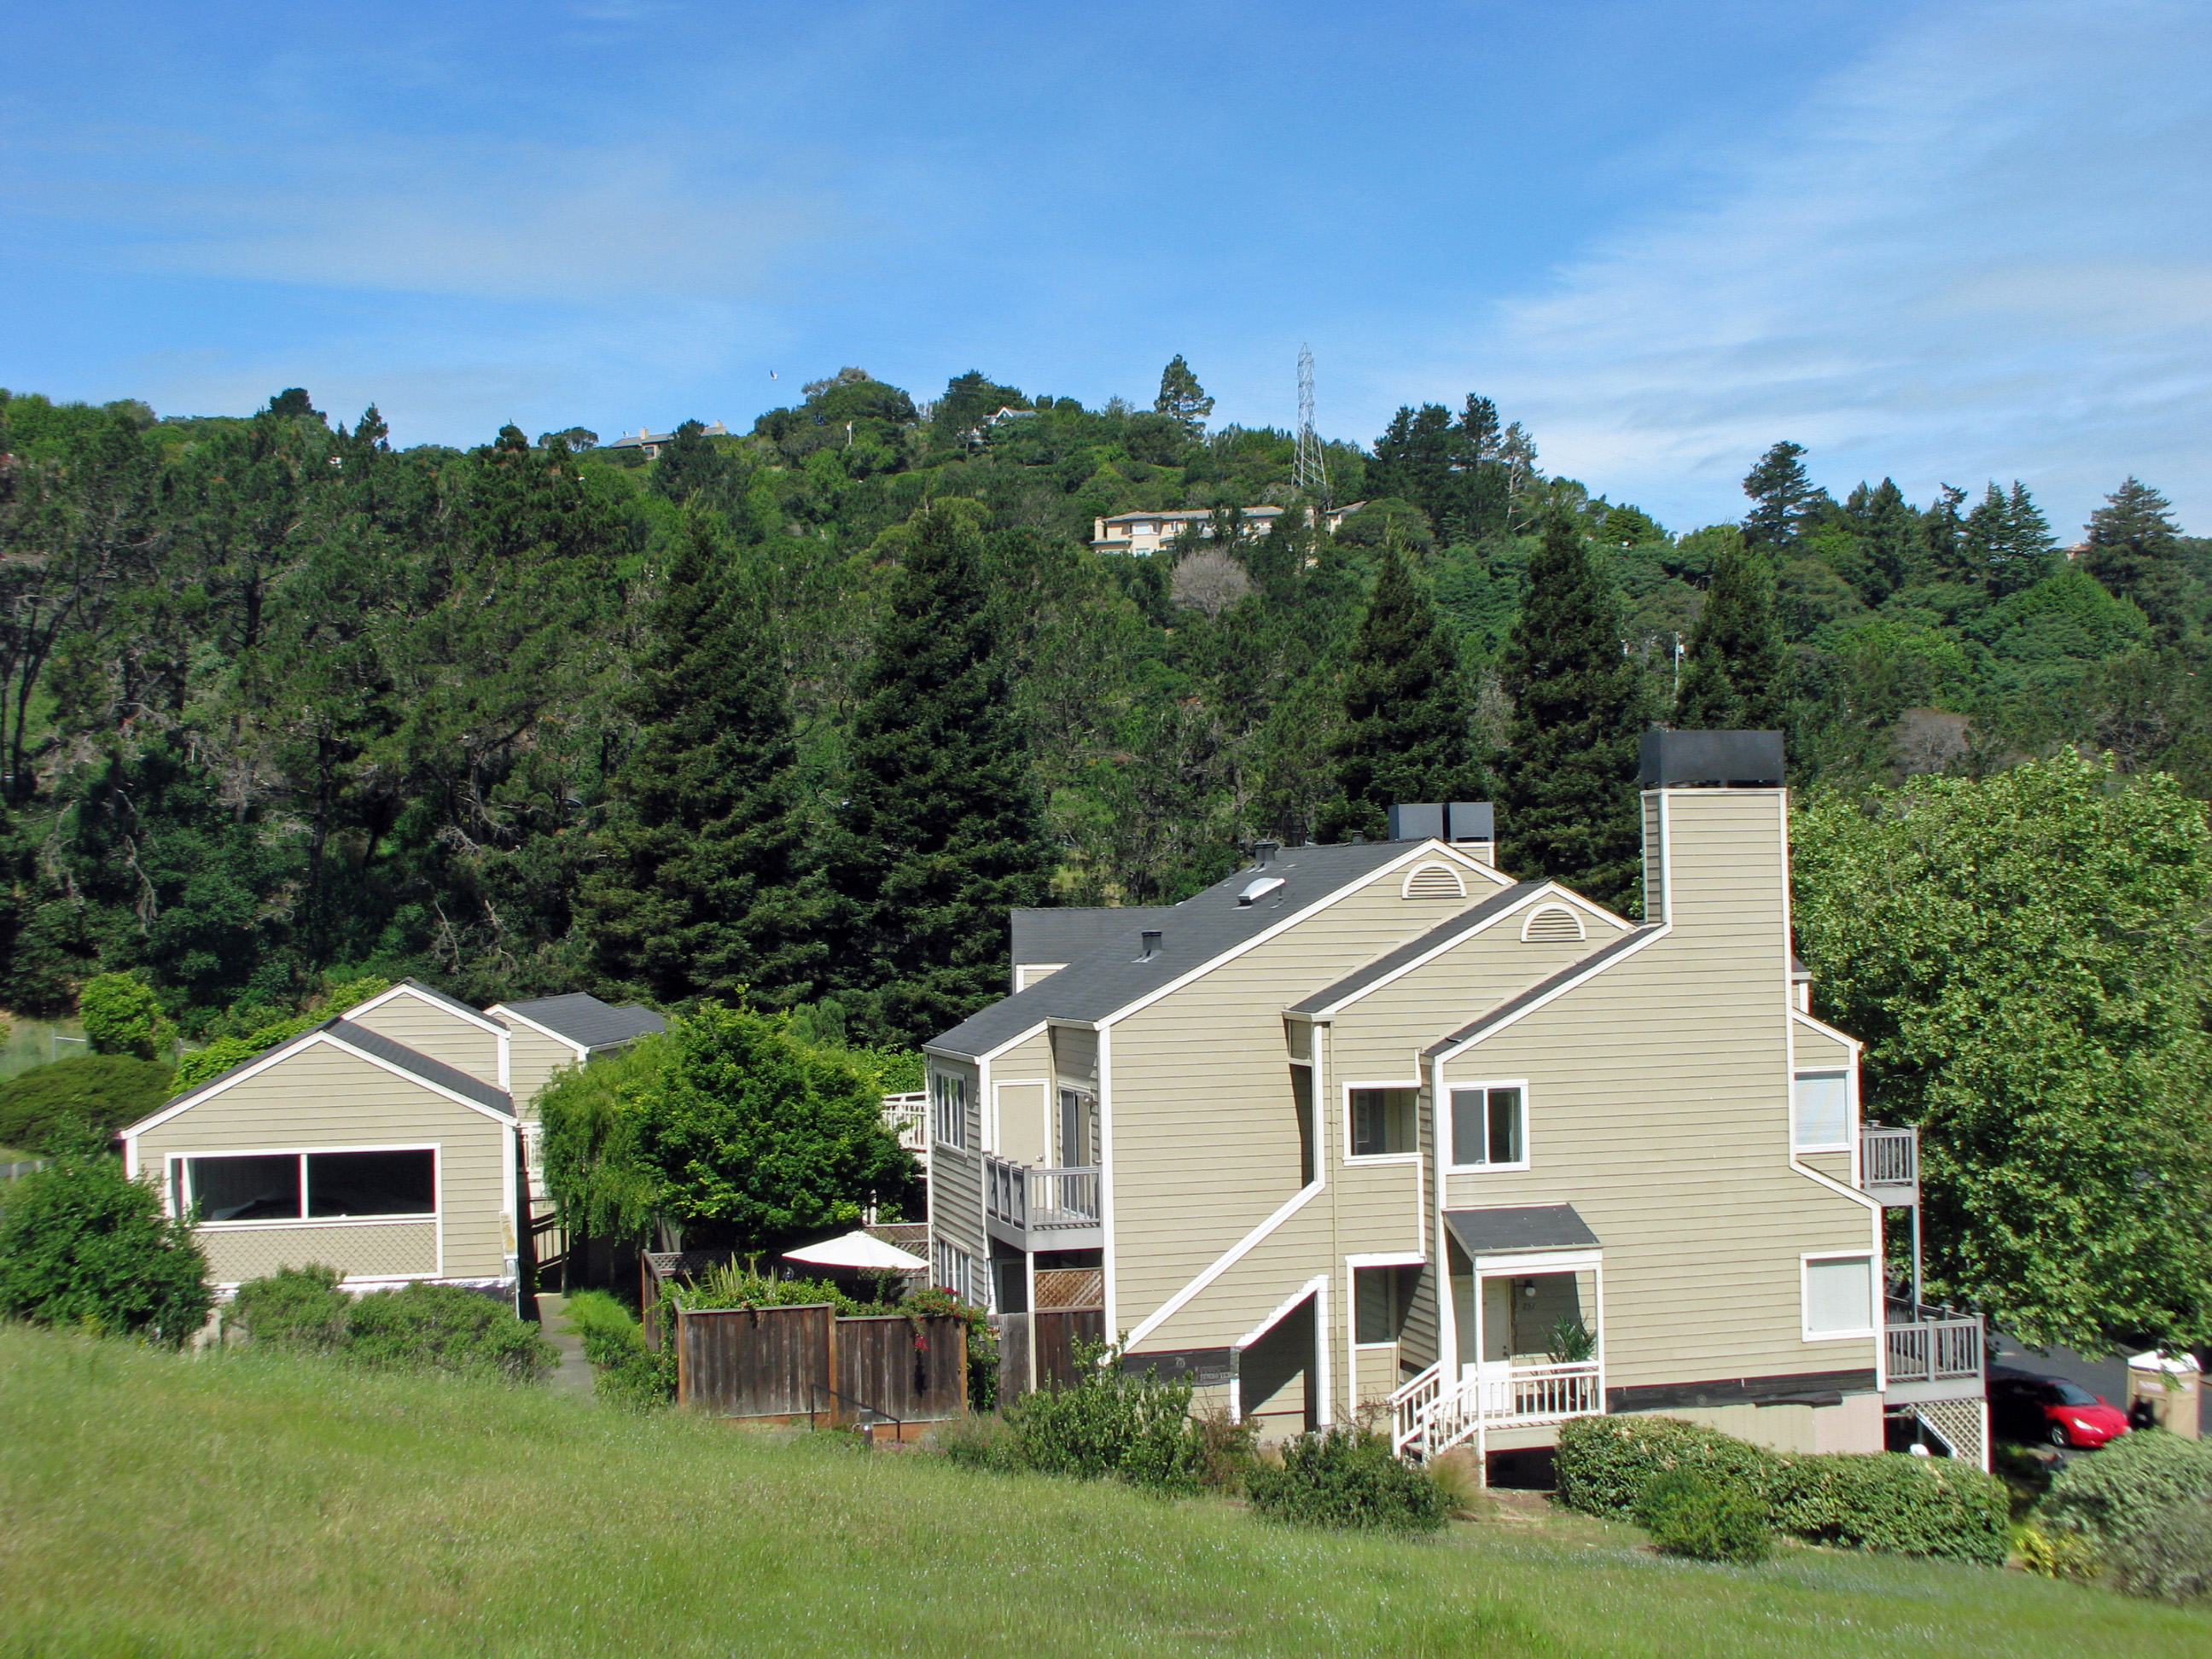 Condos at Meadowcreek Station, Corte Madera, CA